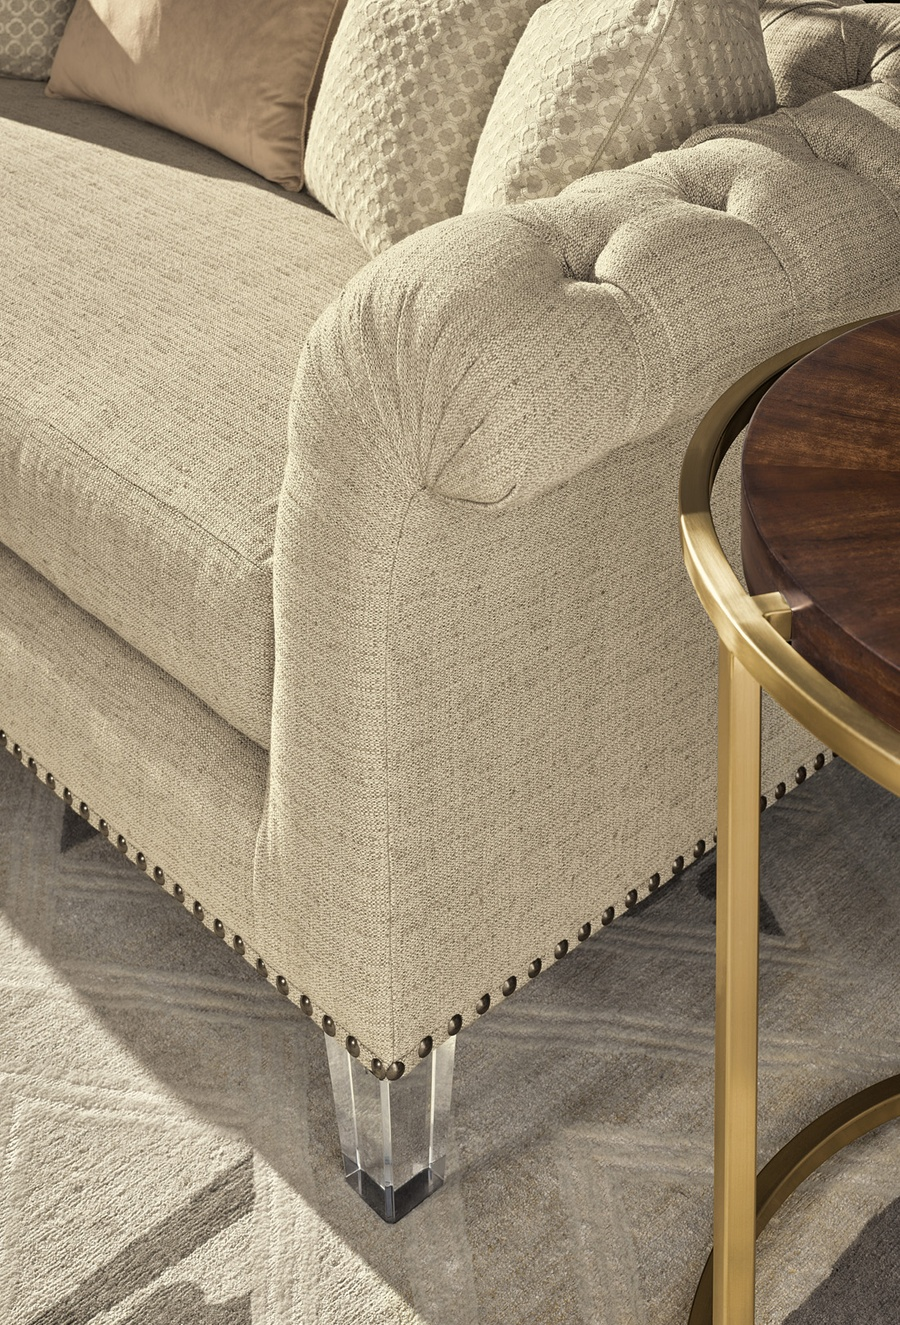 Frame Trim: Antique Brass NailheadShown with Exposed Wood Legs option in Aria finish